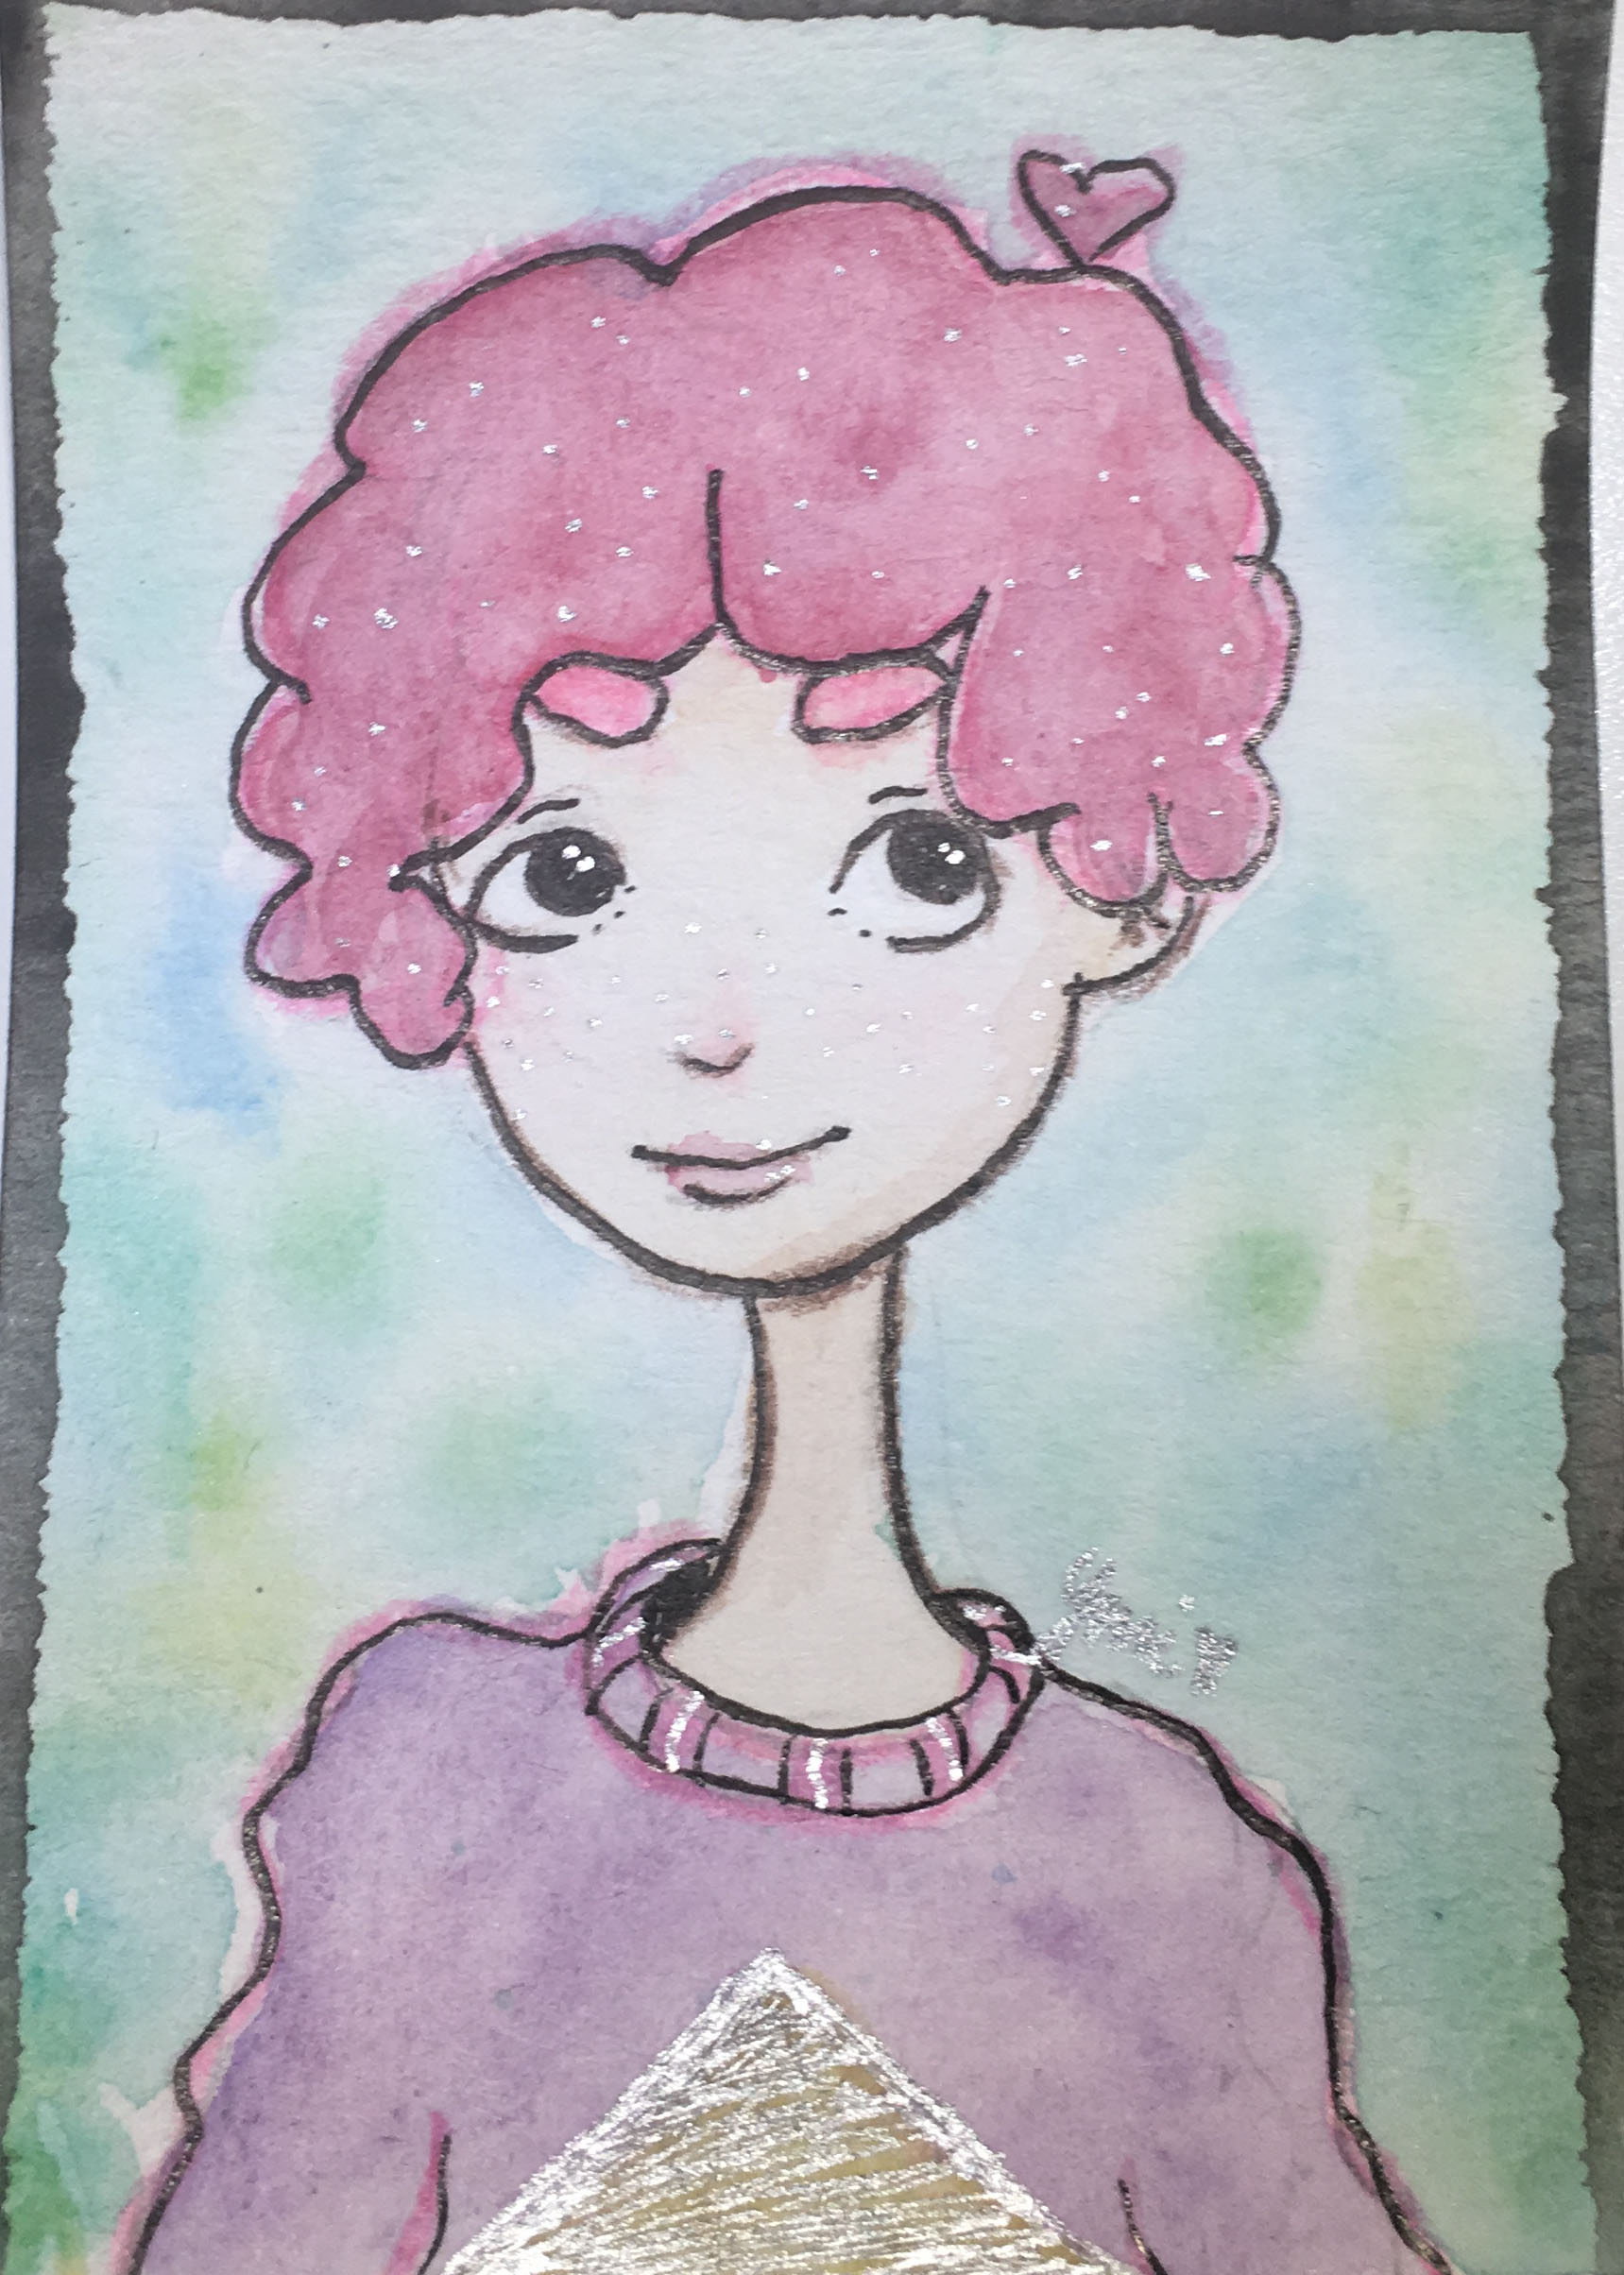 1719x2408 Cotton Candy Kid Original Watercolor Atcaeco Ymi Art Online